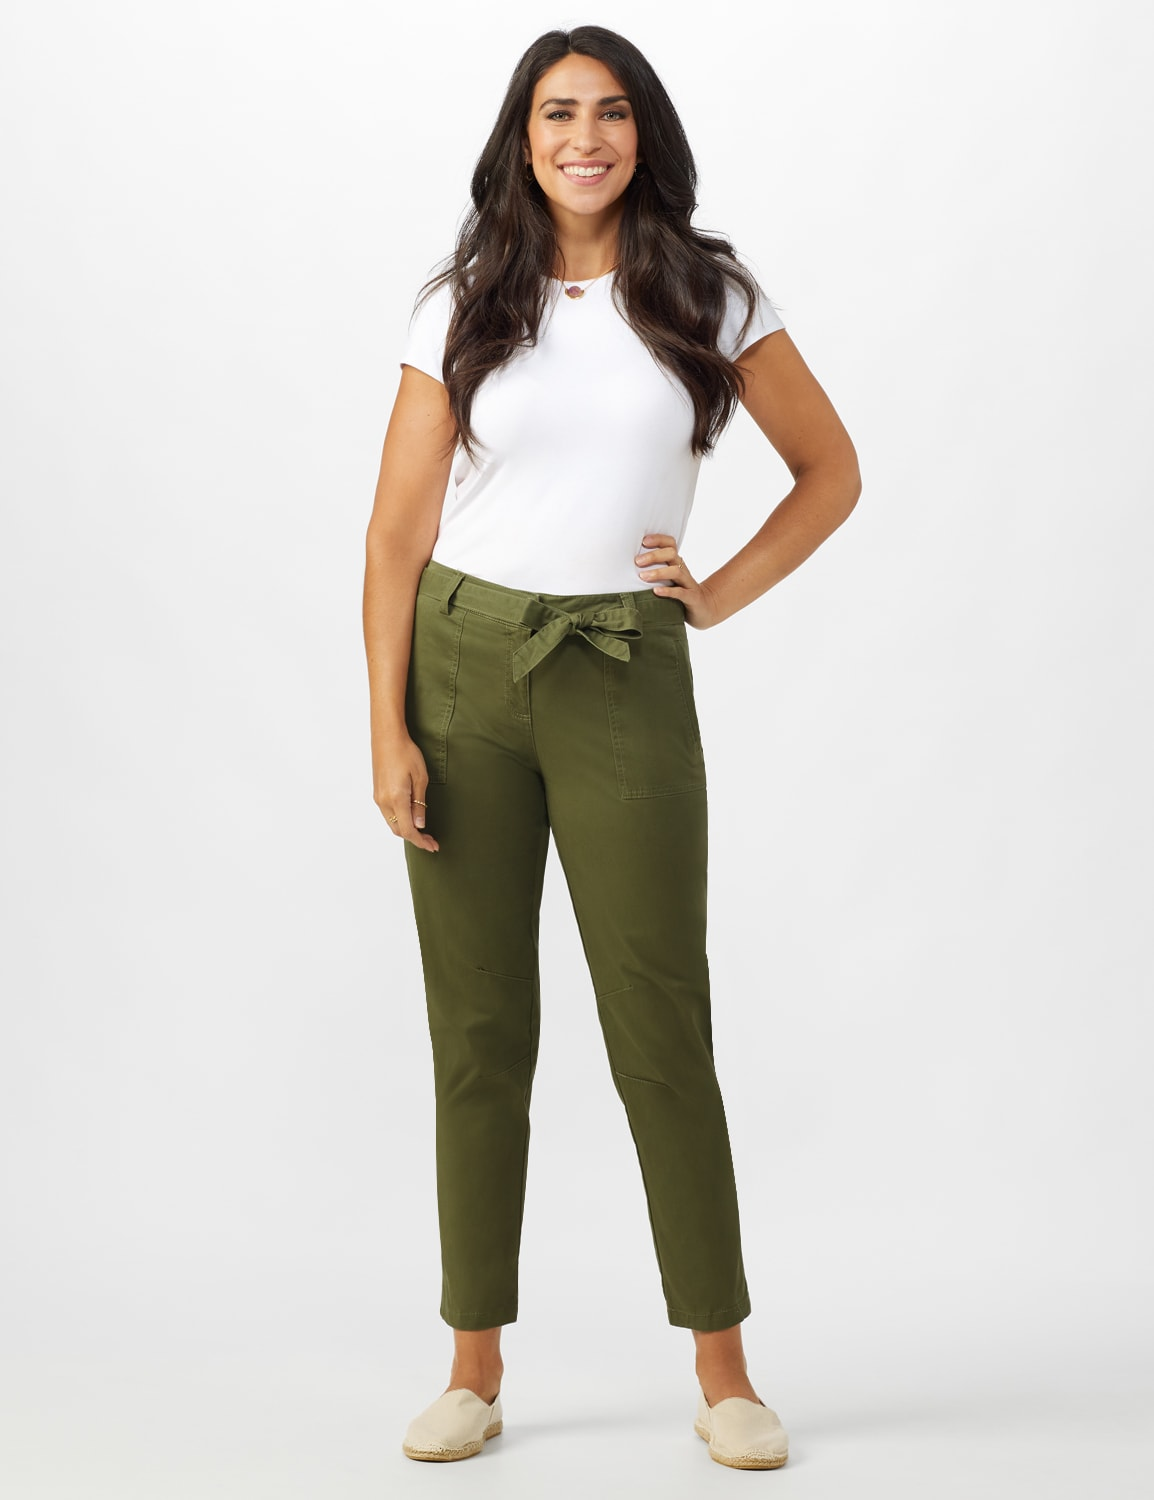 Garment Washed Twill Rolled Hem Tie Waist Pants - Olive - Front